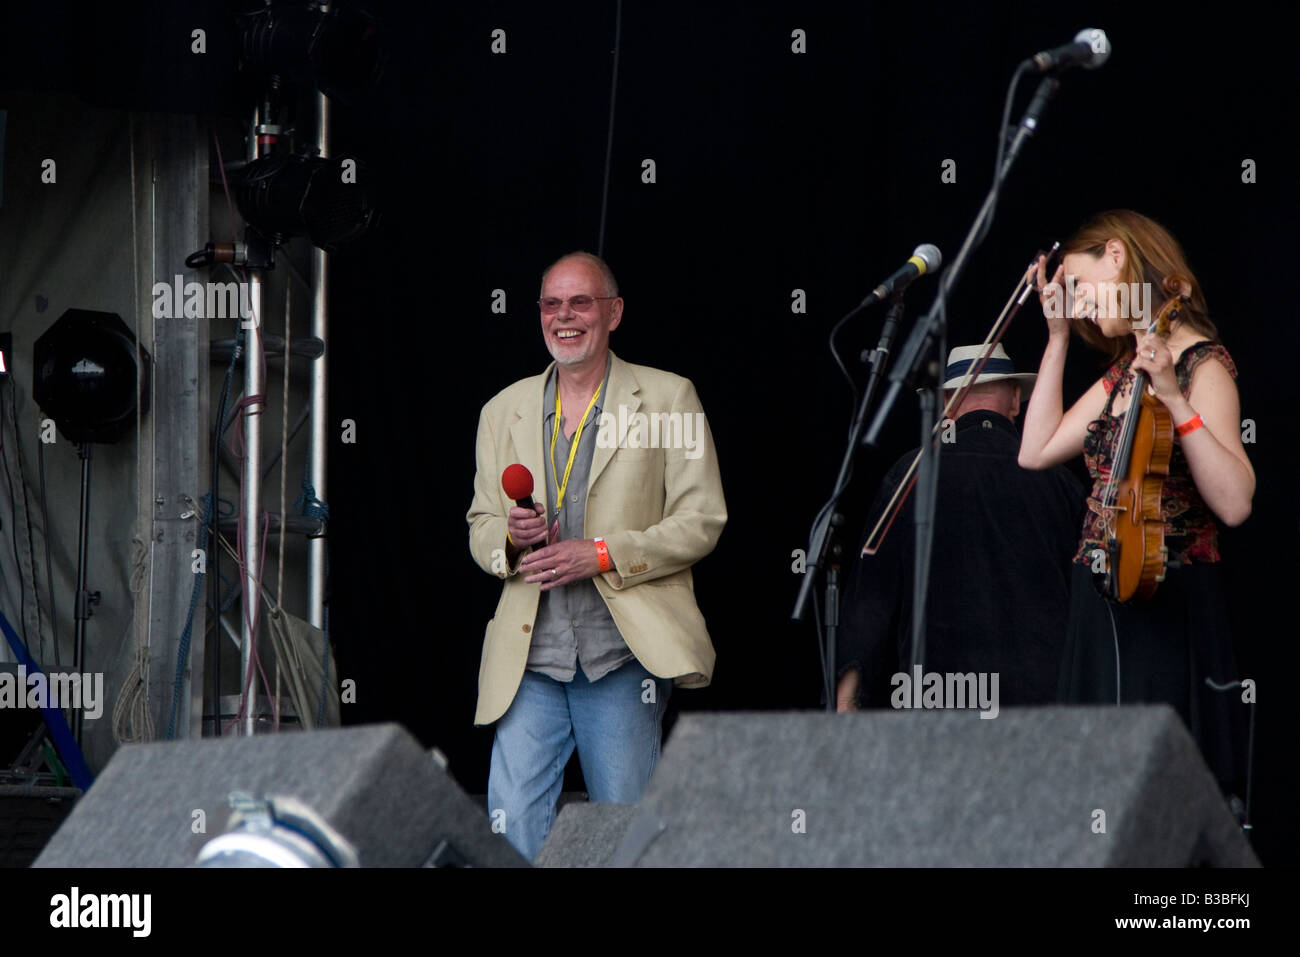 Bob Harris on stage about to introduce Stackridge at Fairport's Cropredy Convention music festival 2008 near - Stock Image